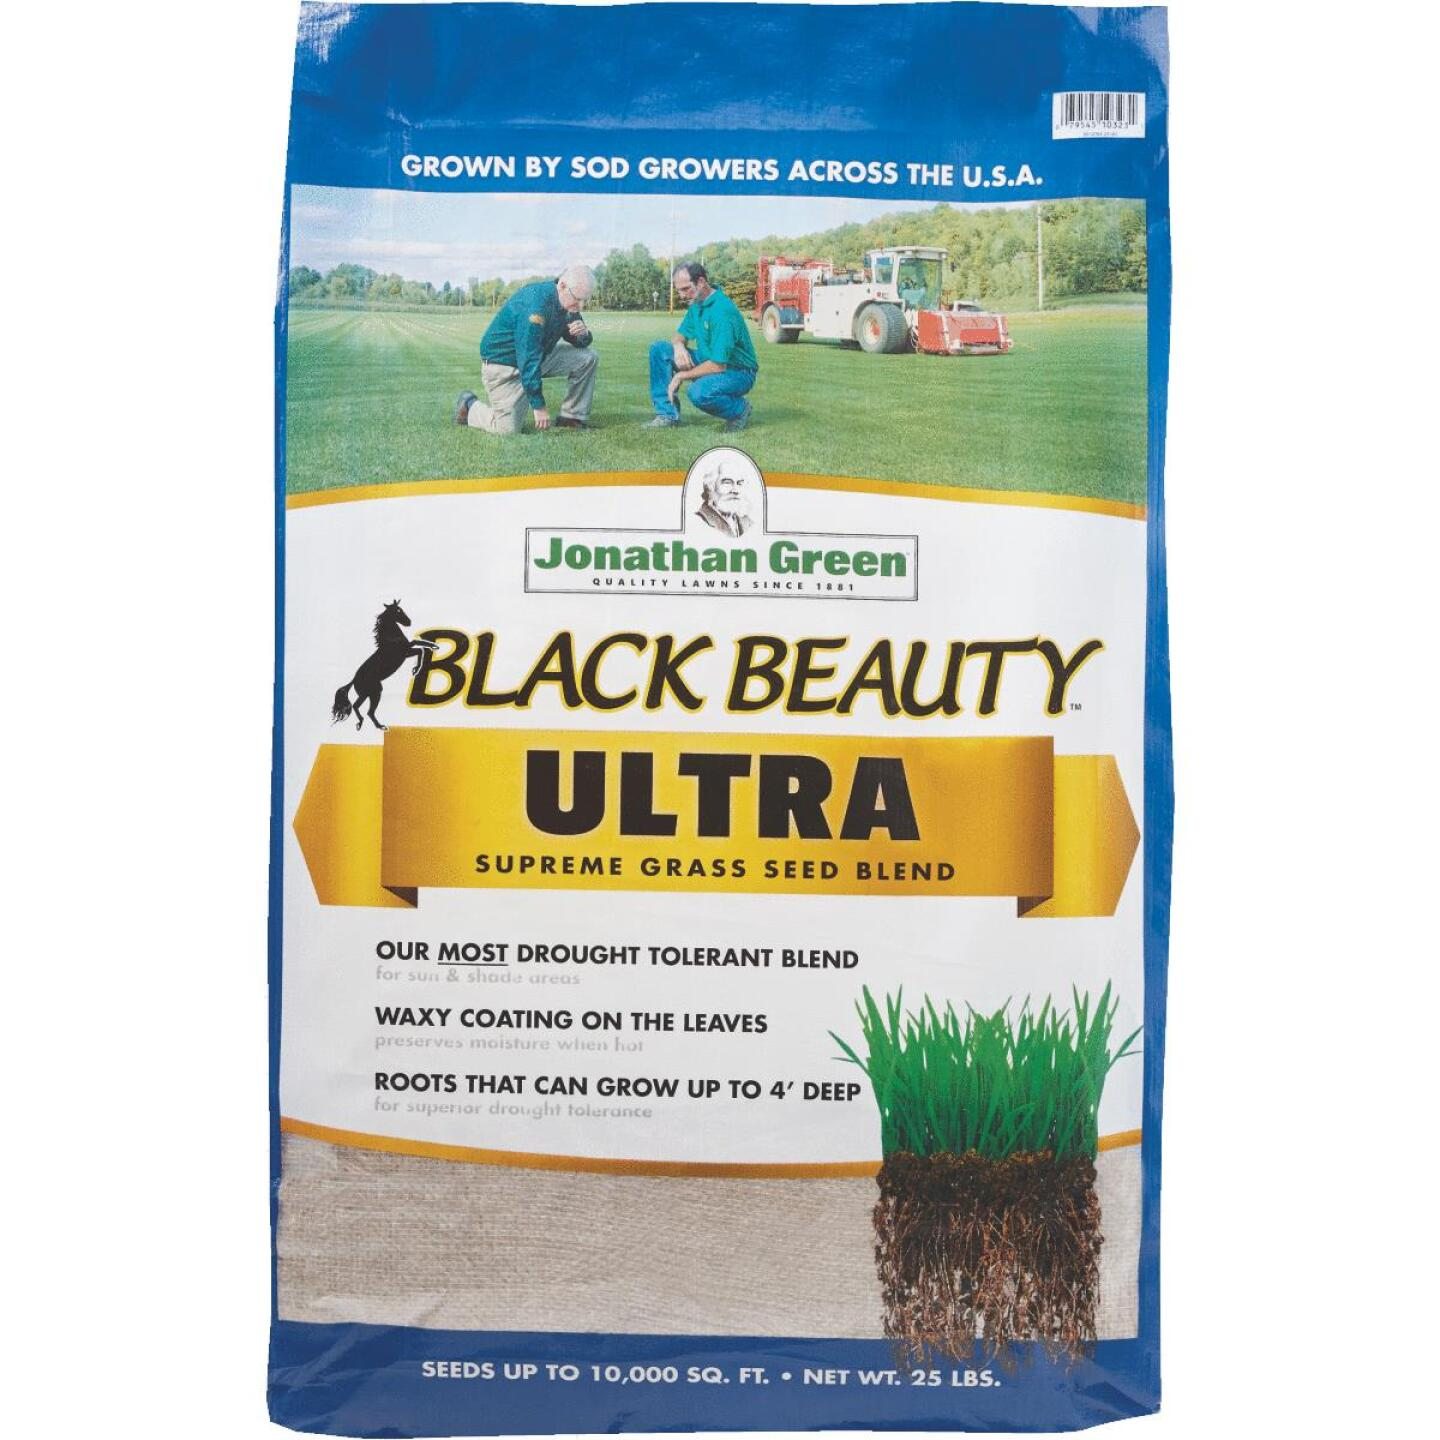 Jonathan Green Black Beauty Ultra 25 Lb. 5000 Sq. Ft. Coverage Tall Fescue Grass Seed Image 1